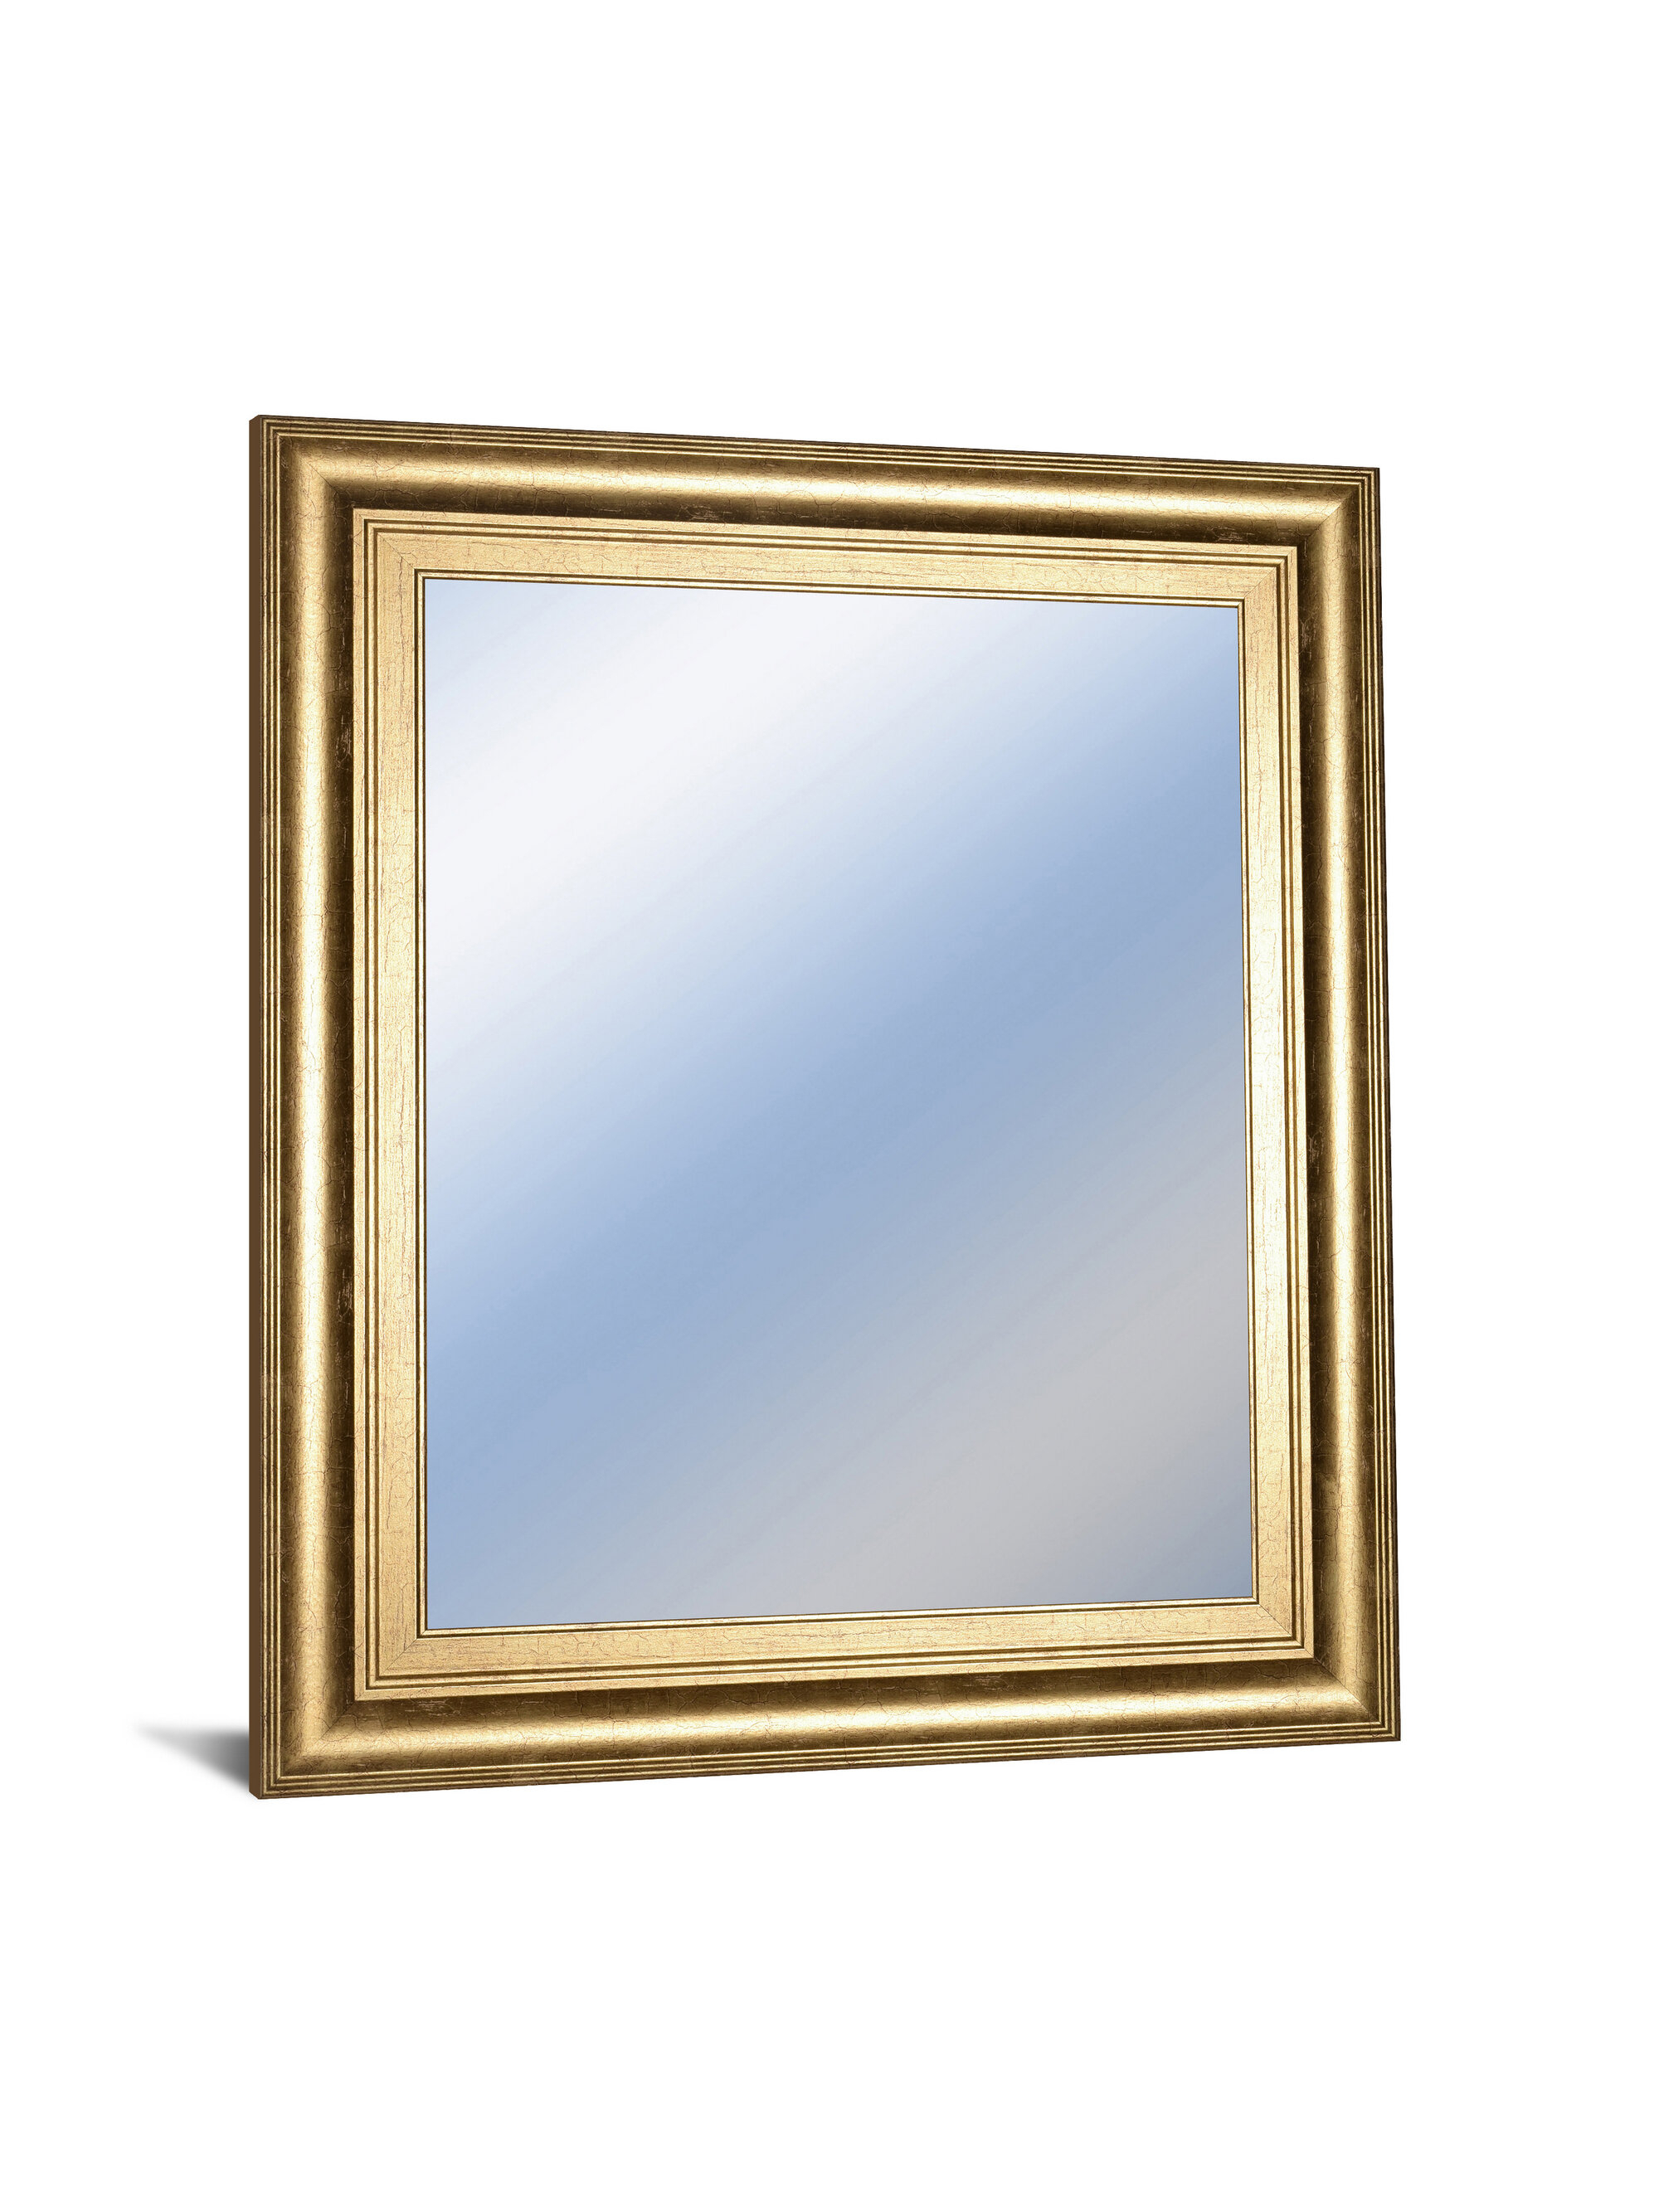 Dedrick Decorative Framed Modern And Contemporary Wall Mirror Intended For Dedrick Decorative Framed Modern And Contemporary Wall Mirrors (Image 7 of 20)